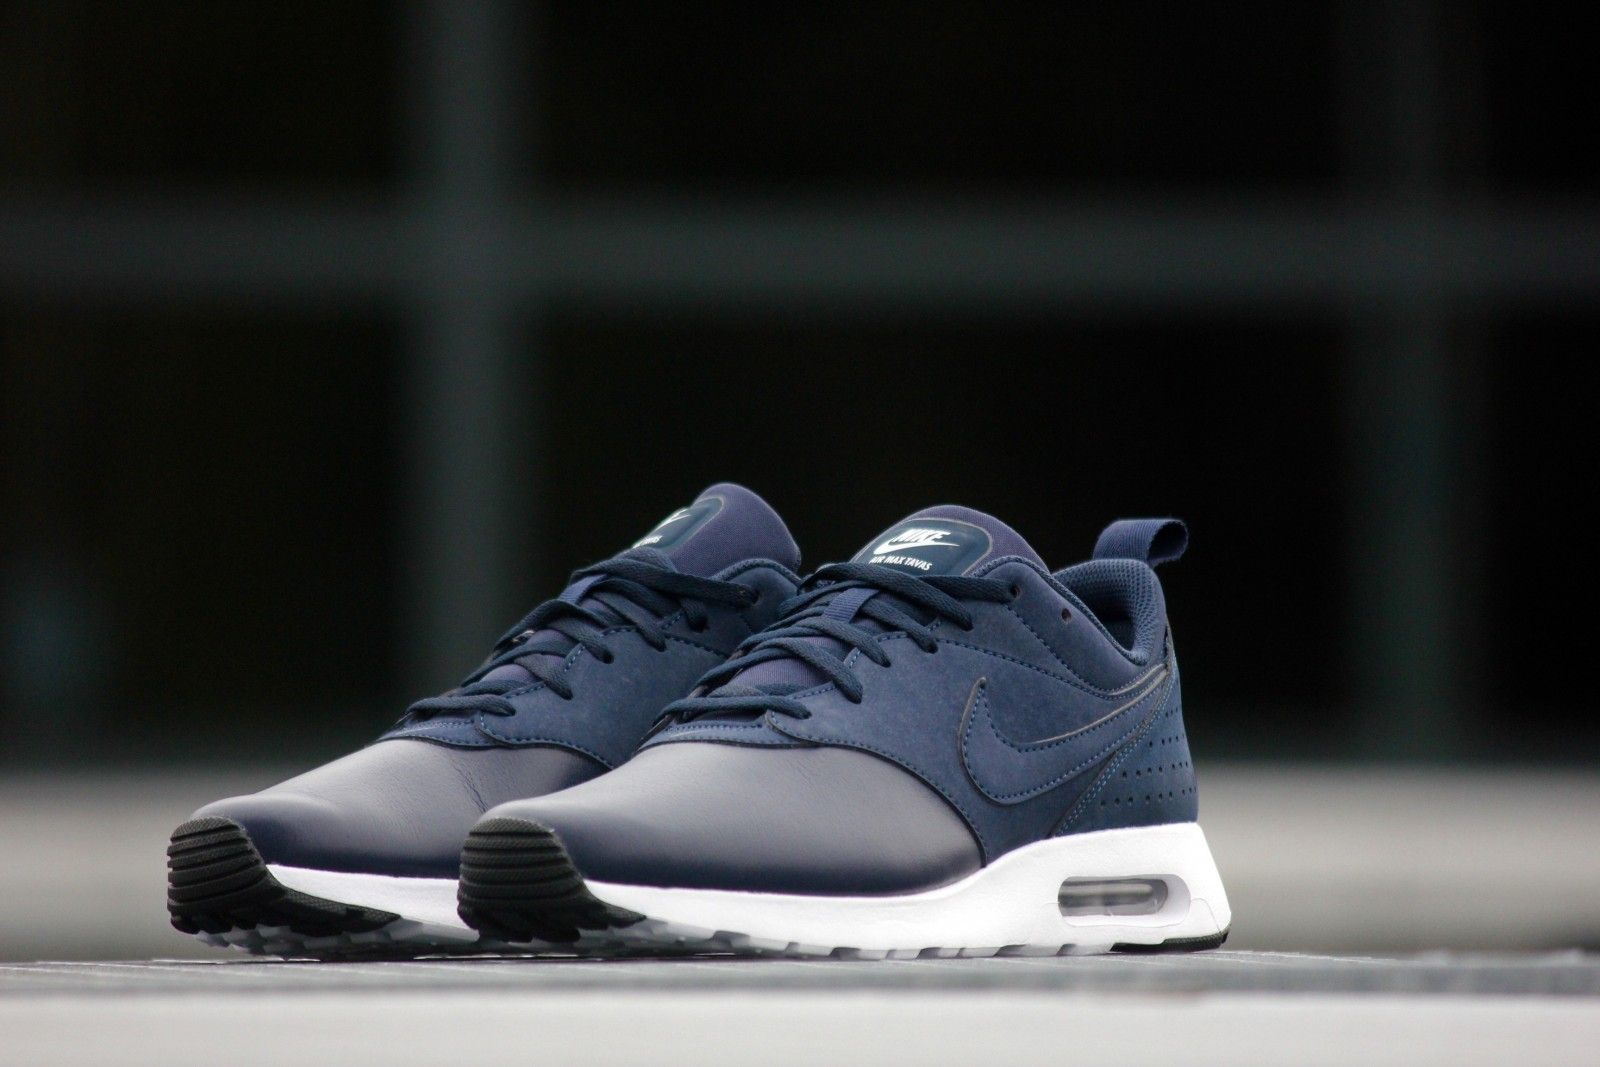 hot sale online 003b7 fb404 Nike Air Max Tavas LTR Obsidian - 802611-400